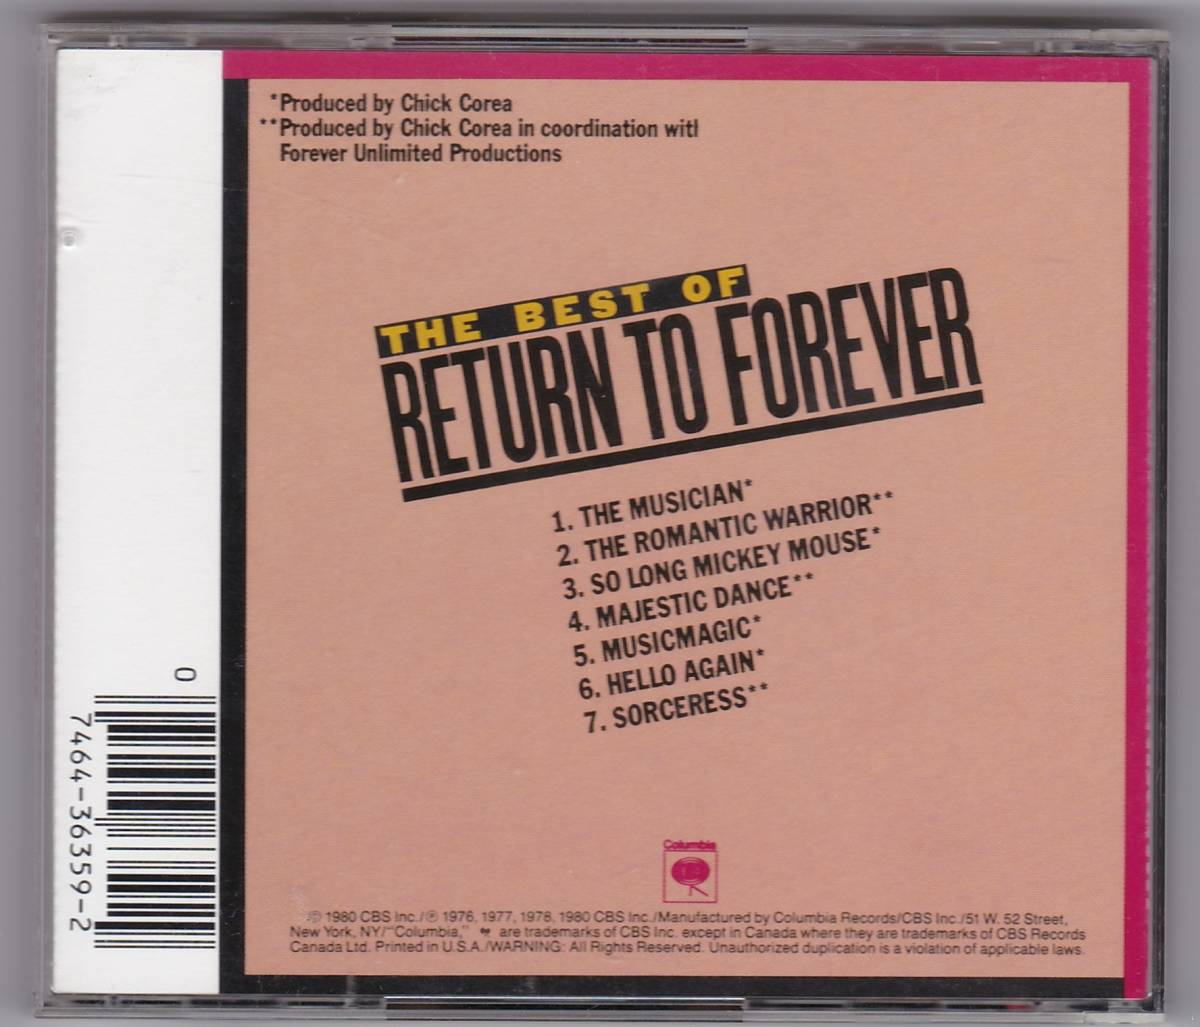 The Best Of Return to Forever リターン・ツ・フォエバー ベスト 中古CD 輸入盤 送料込